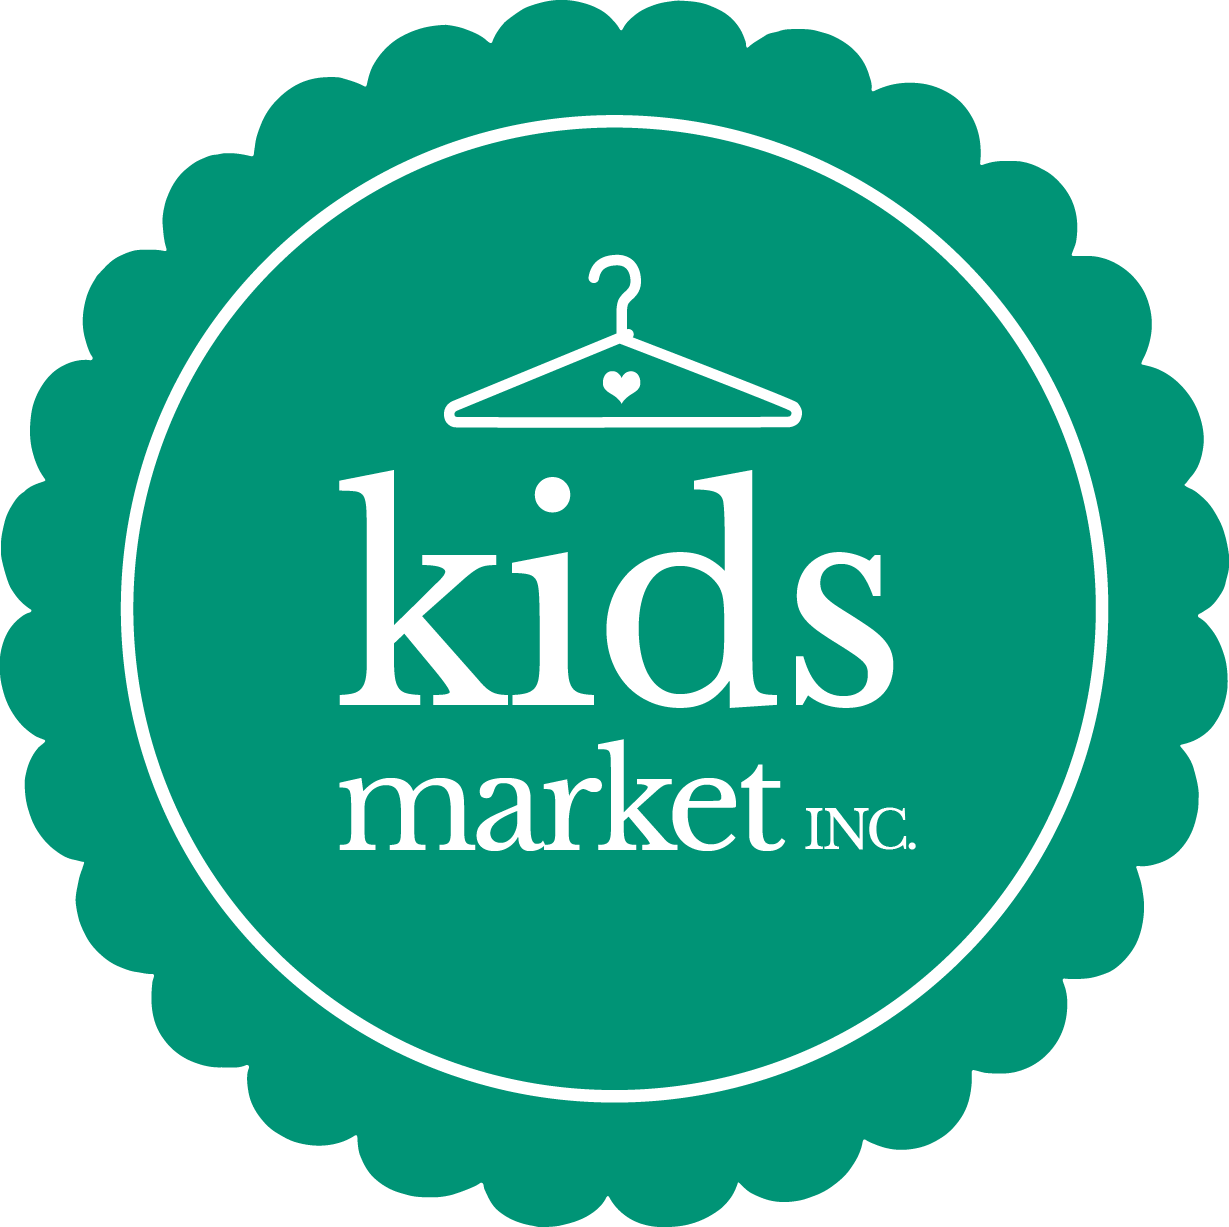 Kids Market, Inc.